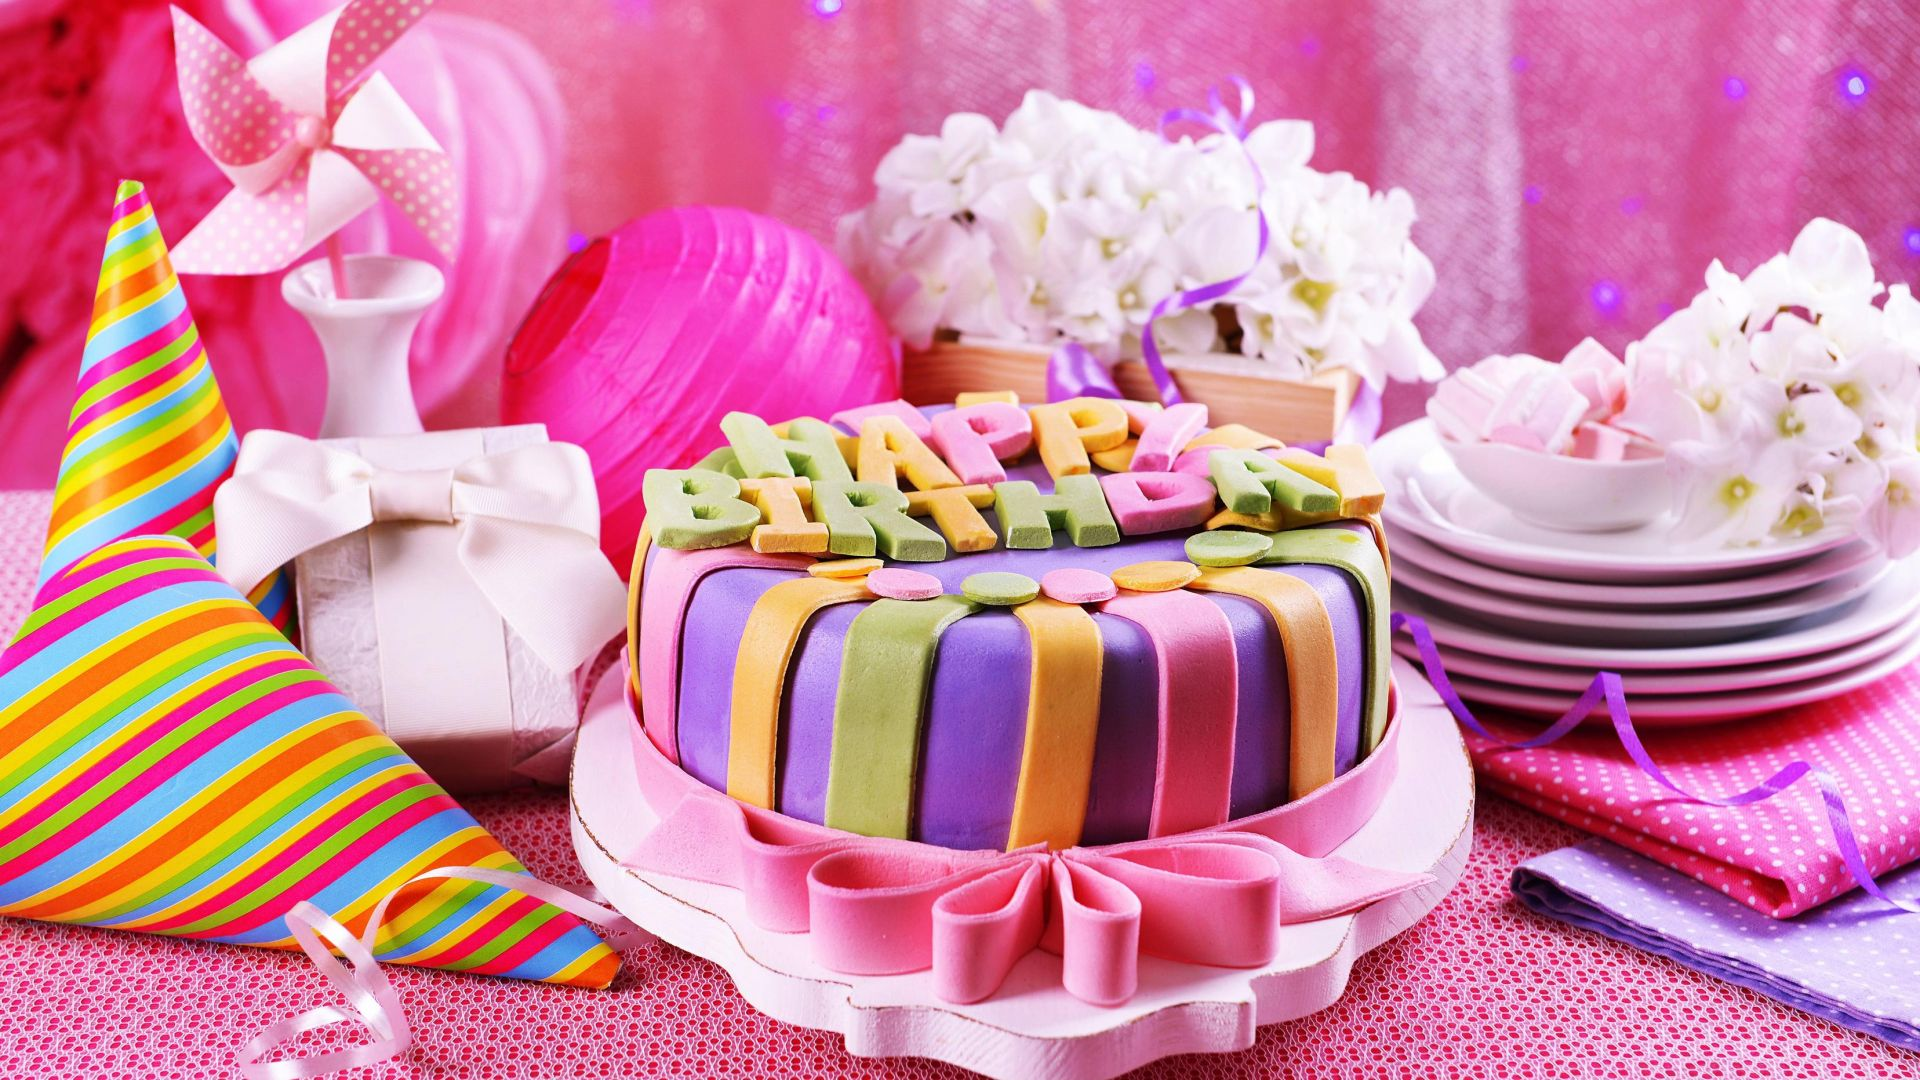 cake, pink, birthday (horizontal)